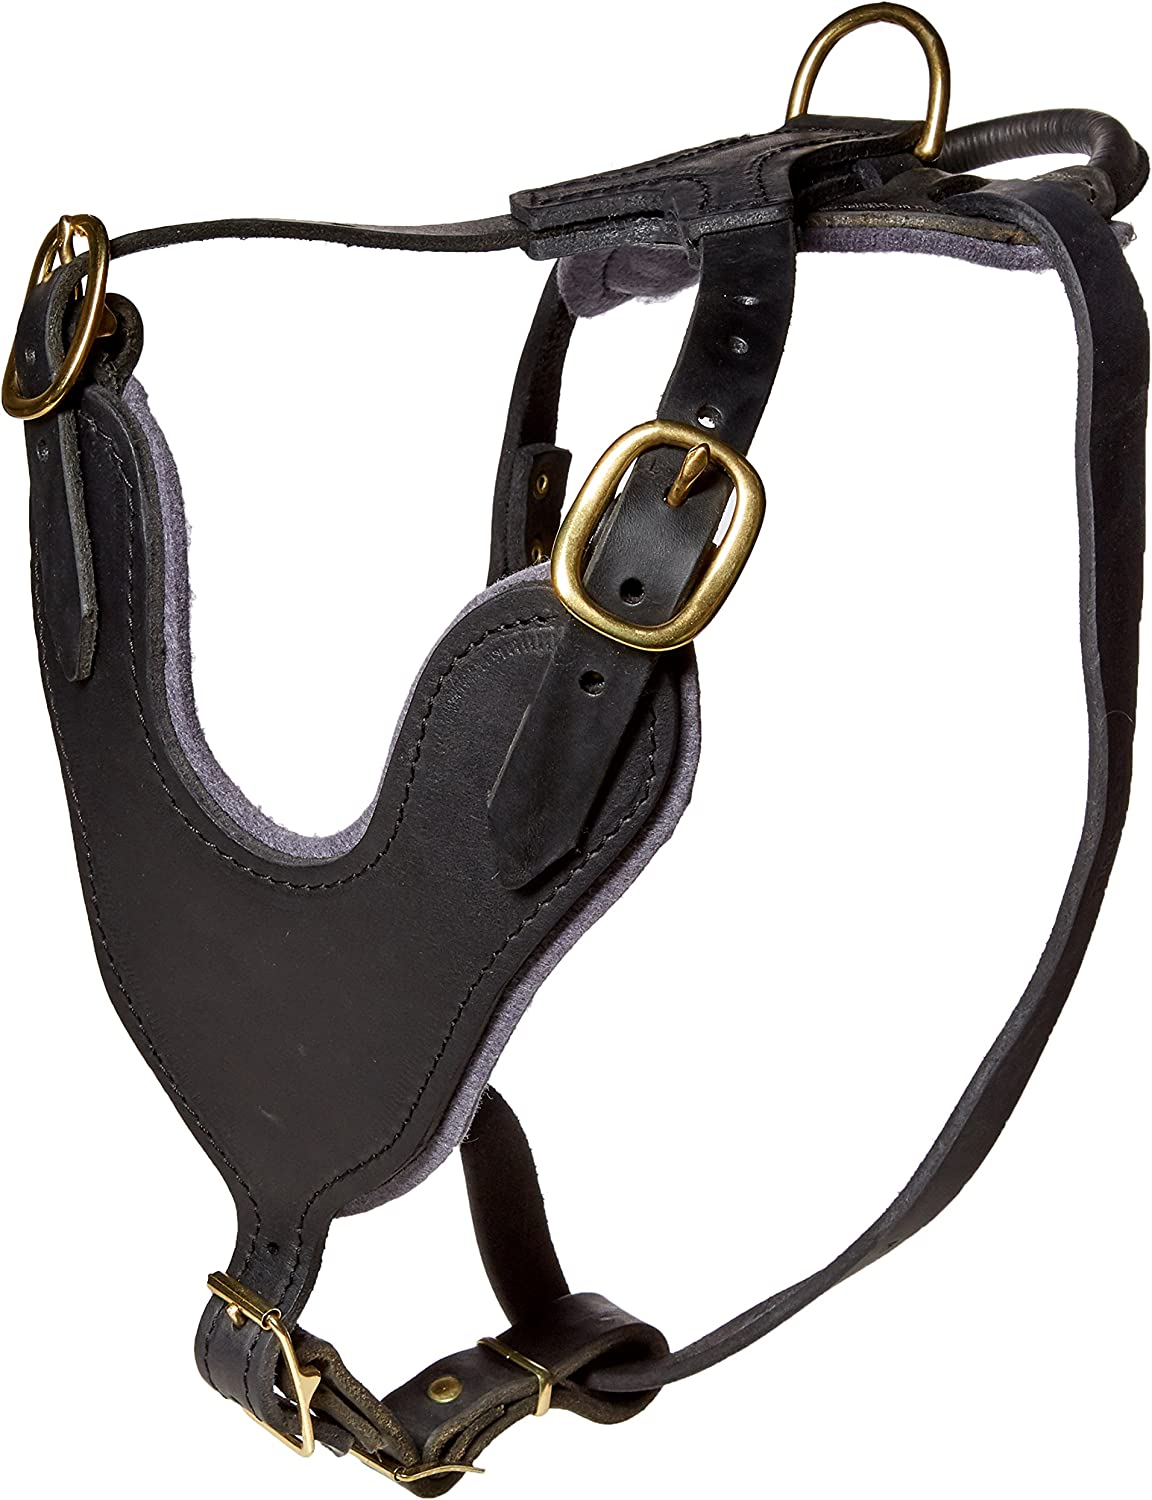 Dean and Tyler Leather Basic Brass Hardware Dog Harness with Handle, Black, Medium  Fits Girth Size  28Inch to 37Inch